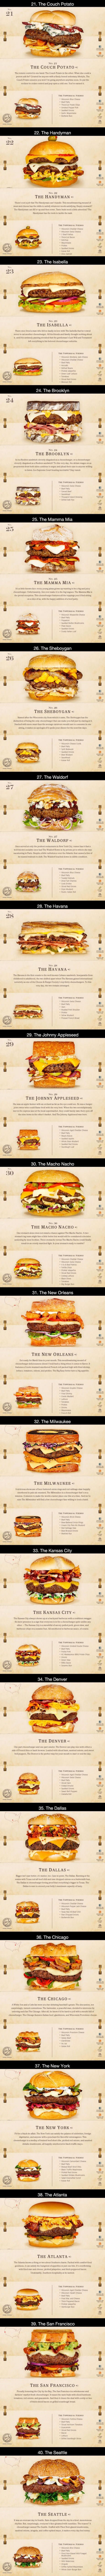 Best Burger recipies for you guys!